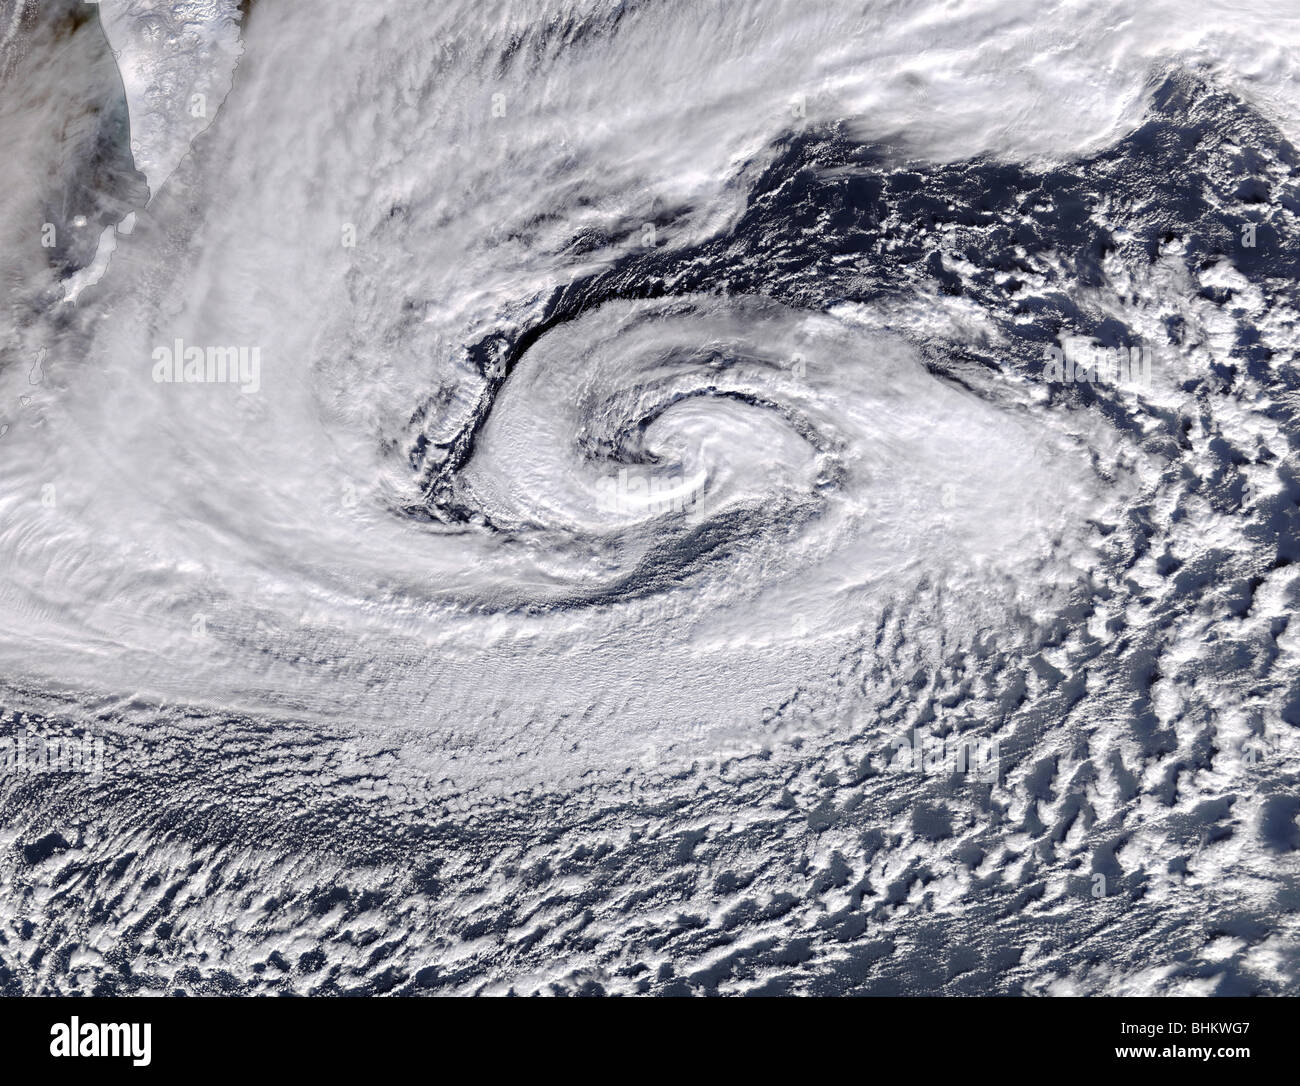 a strong low-pressure system could be seen whirling away just south of Kamchatka Peninsula and the Aleutian Islands. - Stock Image